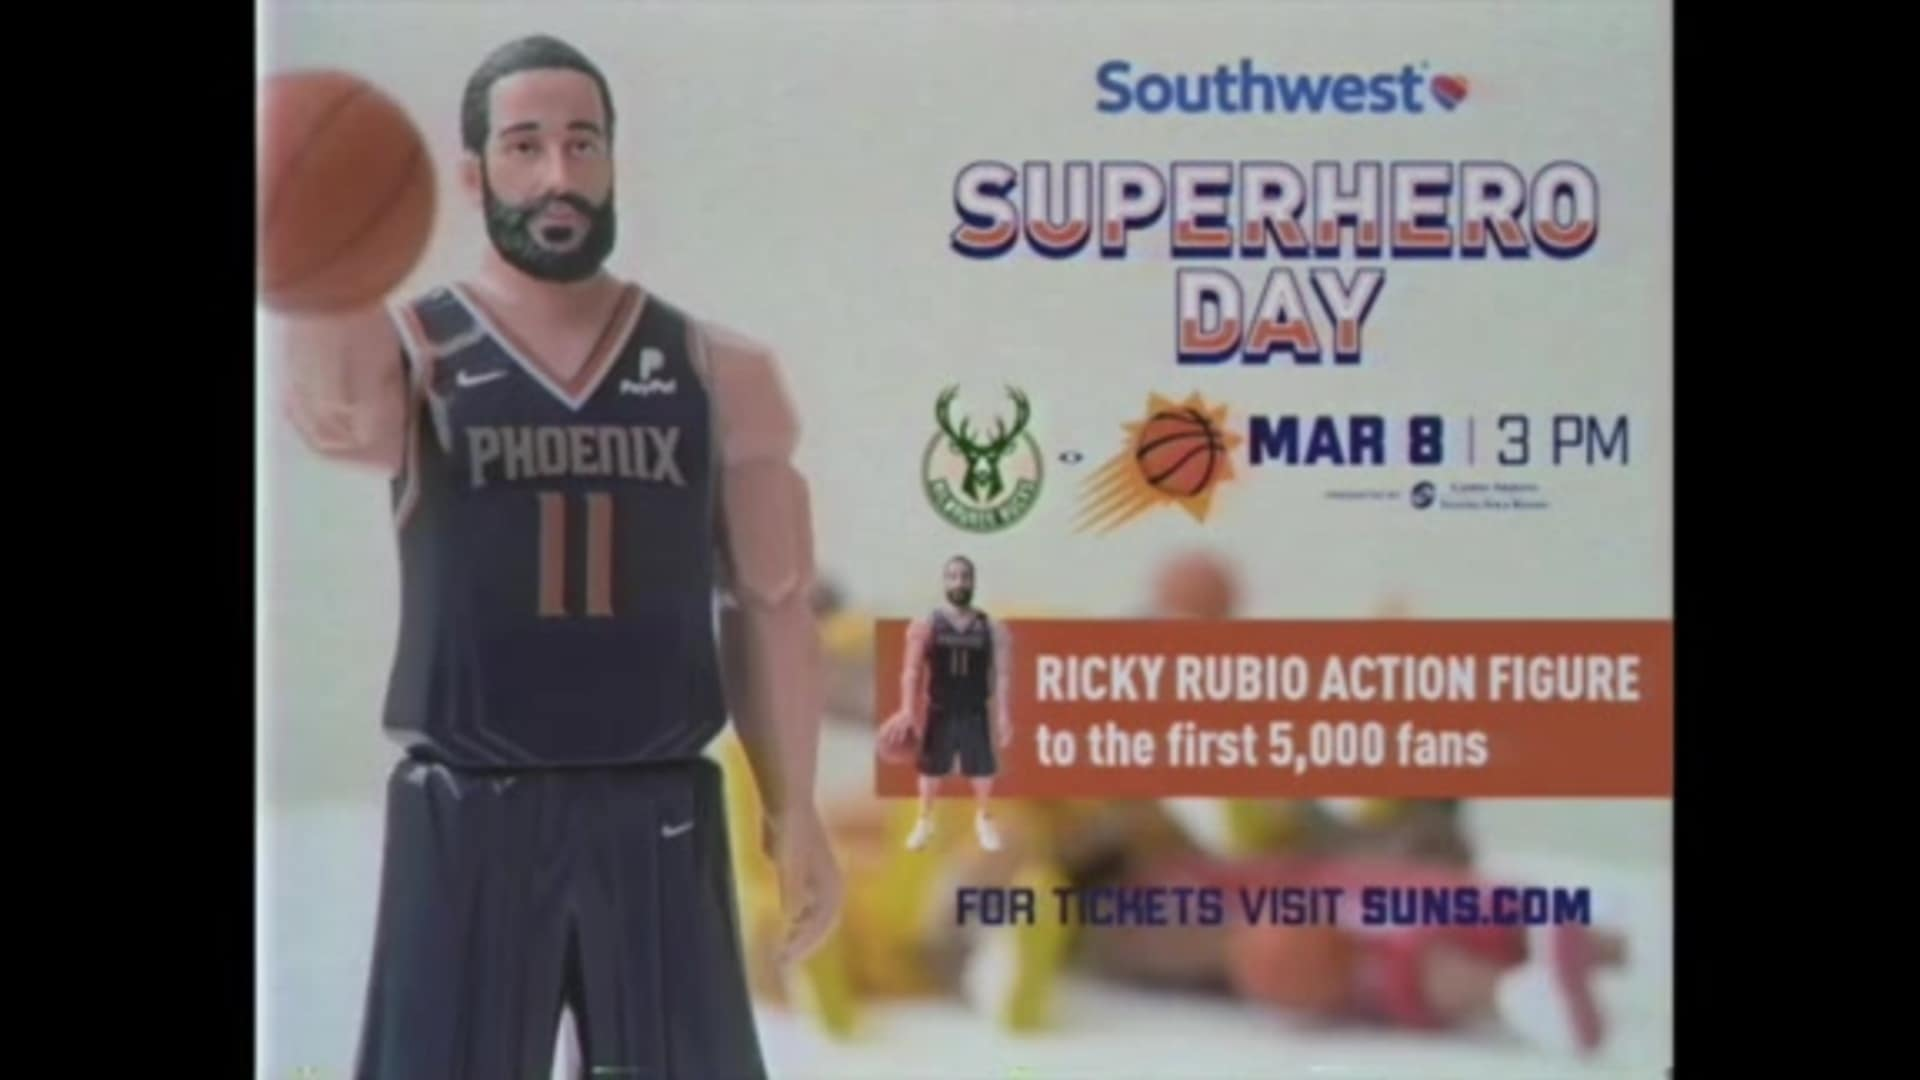 Southwest Airlines Superhero Day: Rubio Action Figure